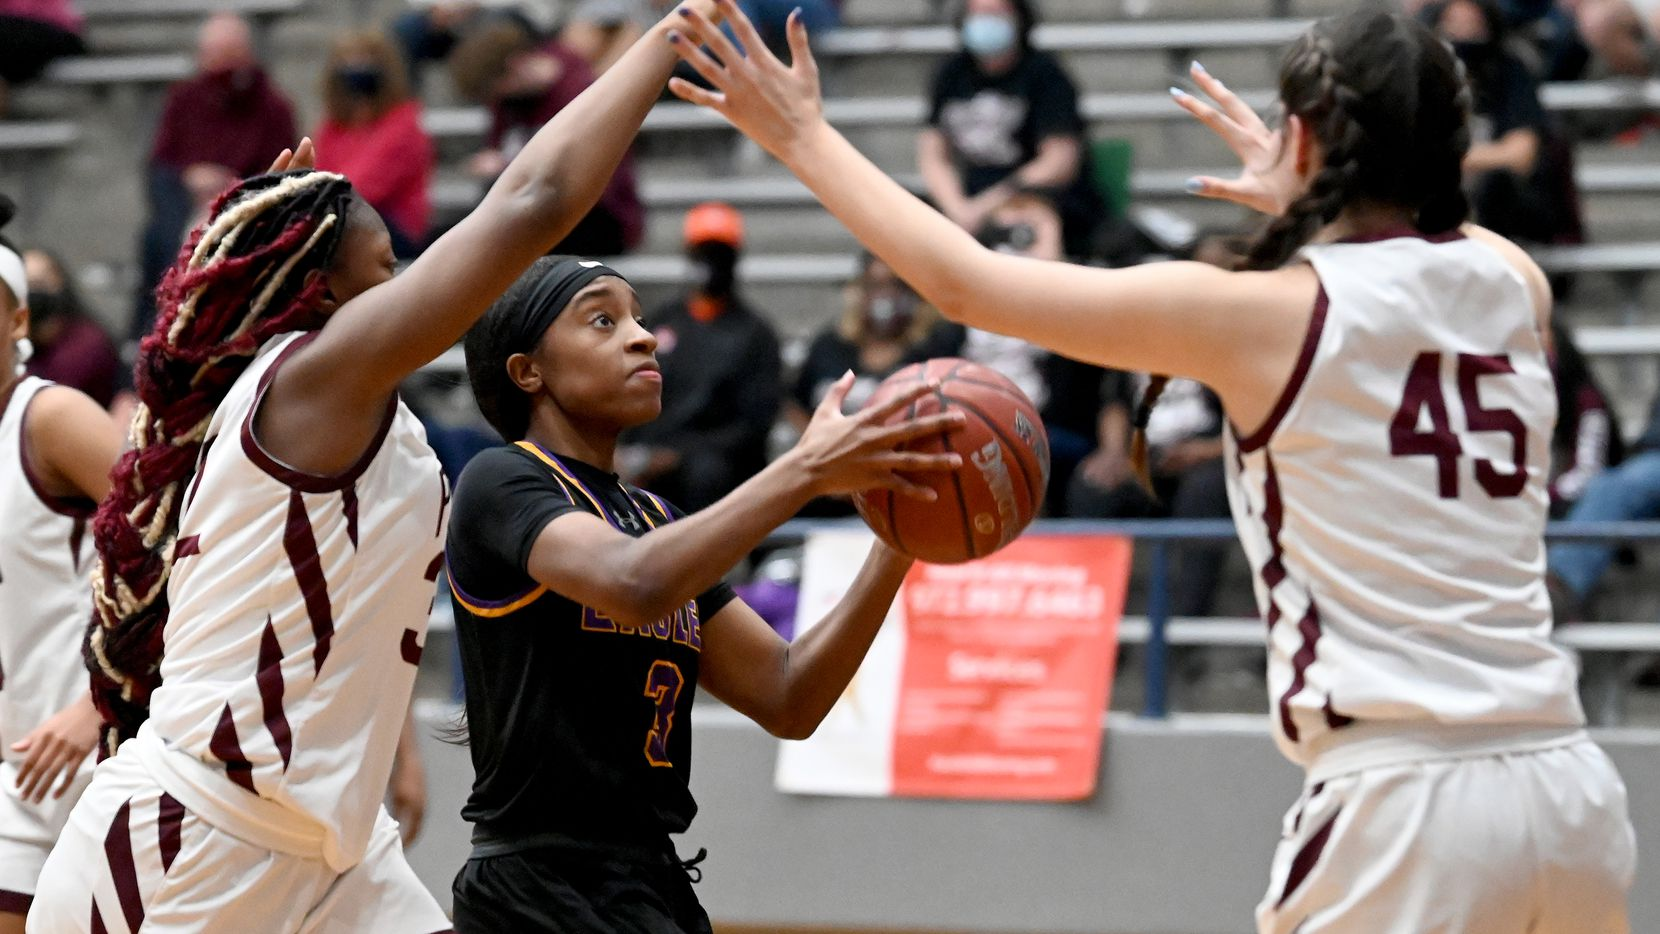 Richardson's Zariah Tillman drives to the basket between Plano's Sanaa Murphy-Showers and Avery Foltz (45) in the second half of Monday's Class 6A area-round playoff game. Plano won 57-46. (Matt Strasen/Special Contributor)